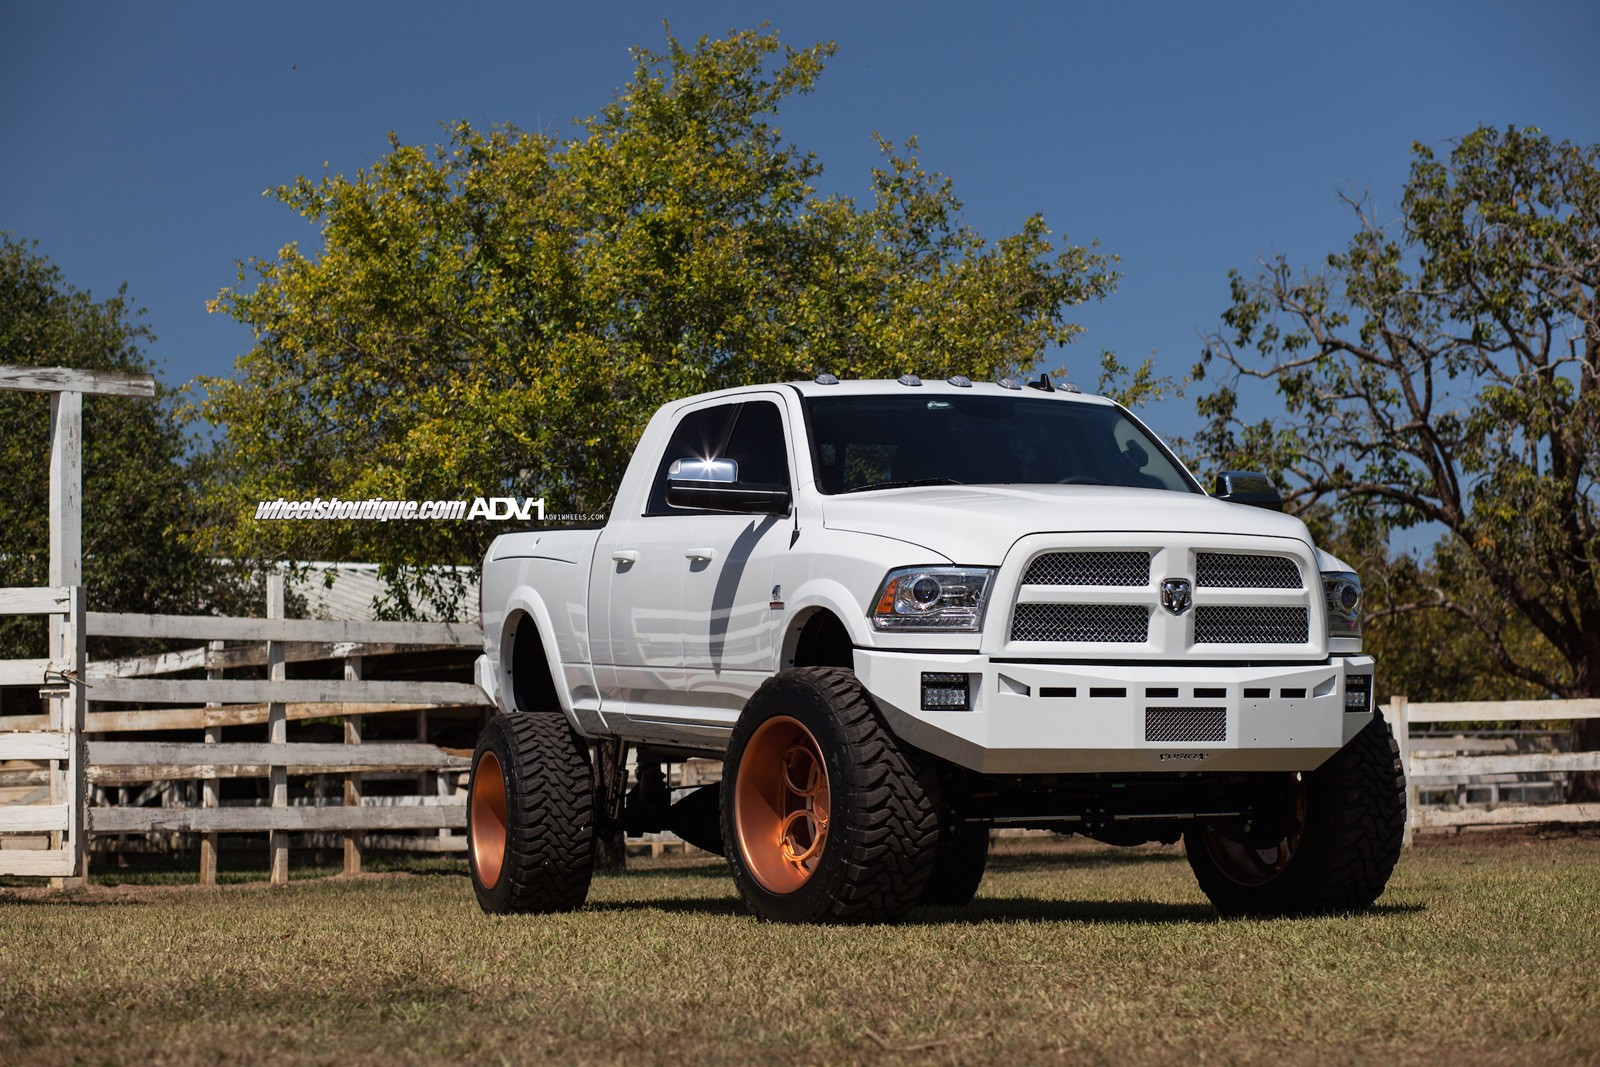 Lifted Ram 2500 On Rose Gold Wheels Meets A Horse Autoevolution 2000 Dodge Starter Wiring Diagram